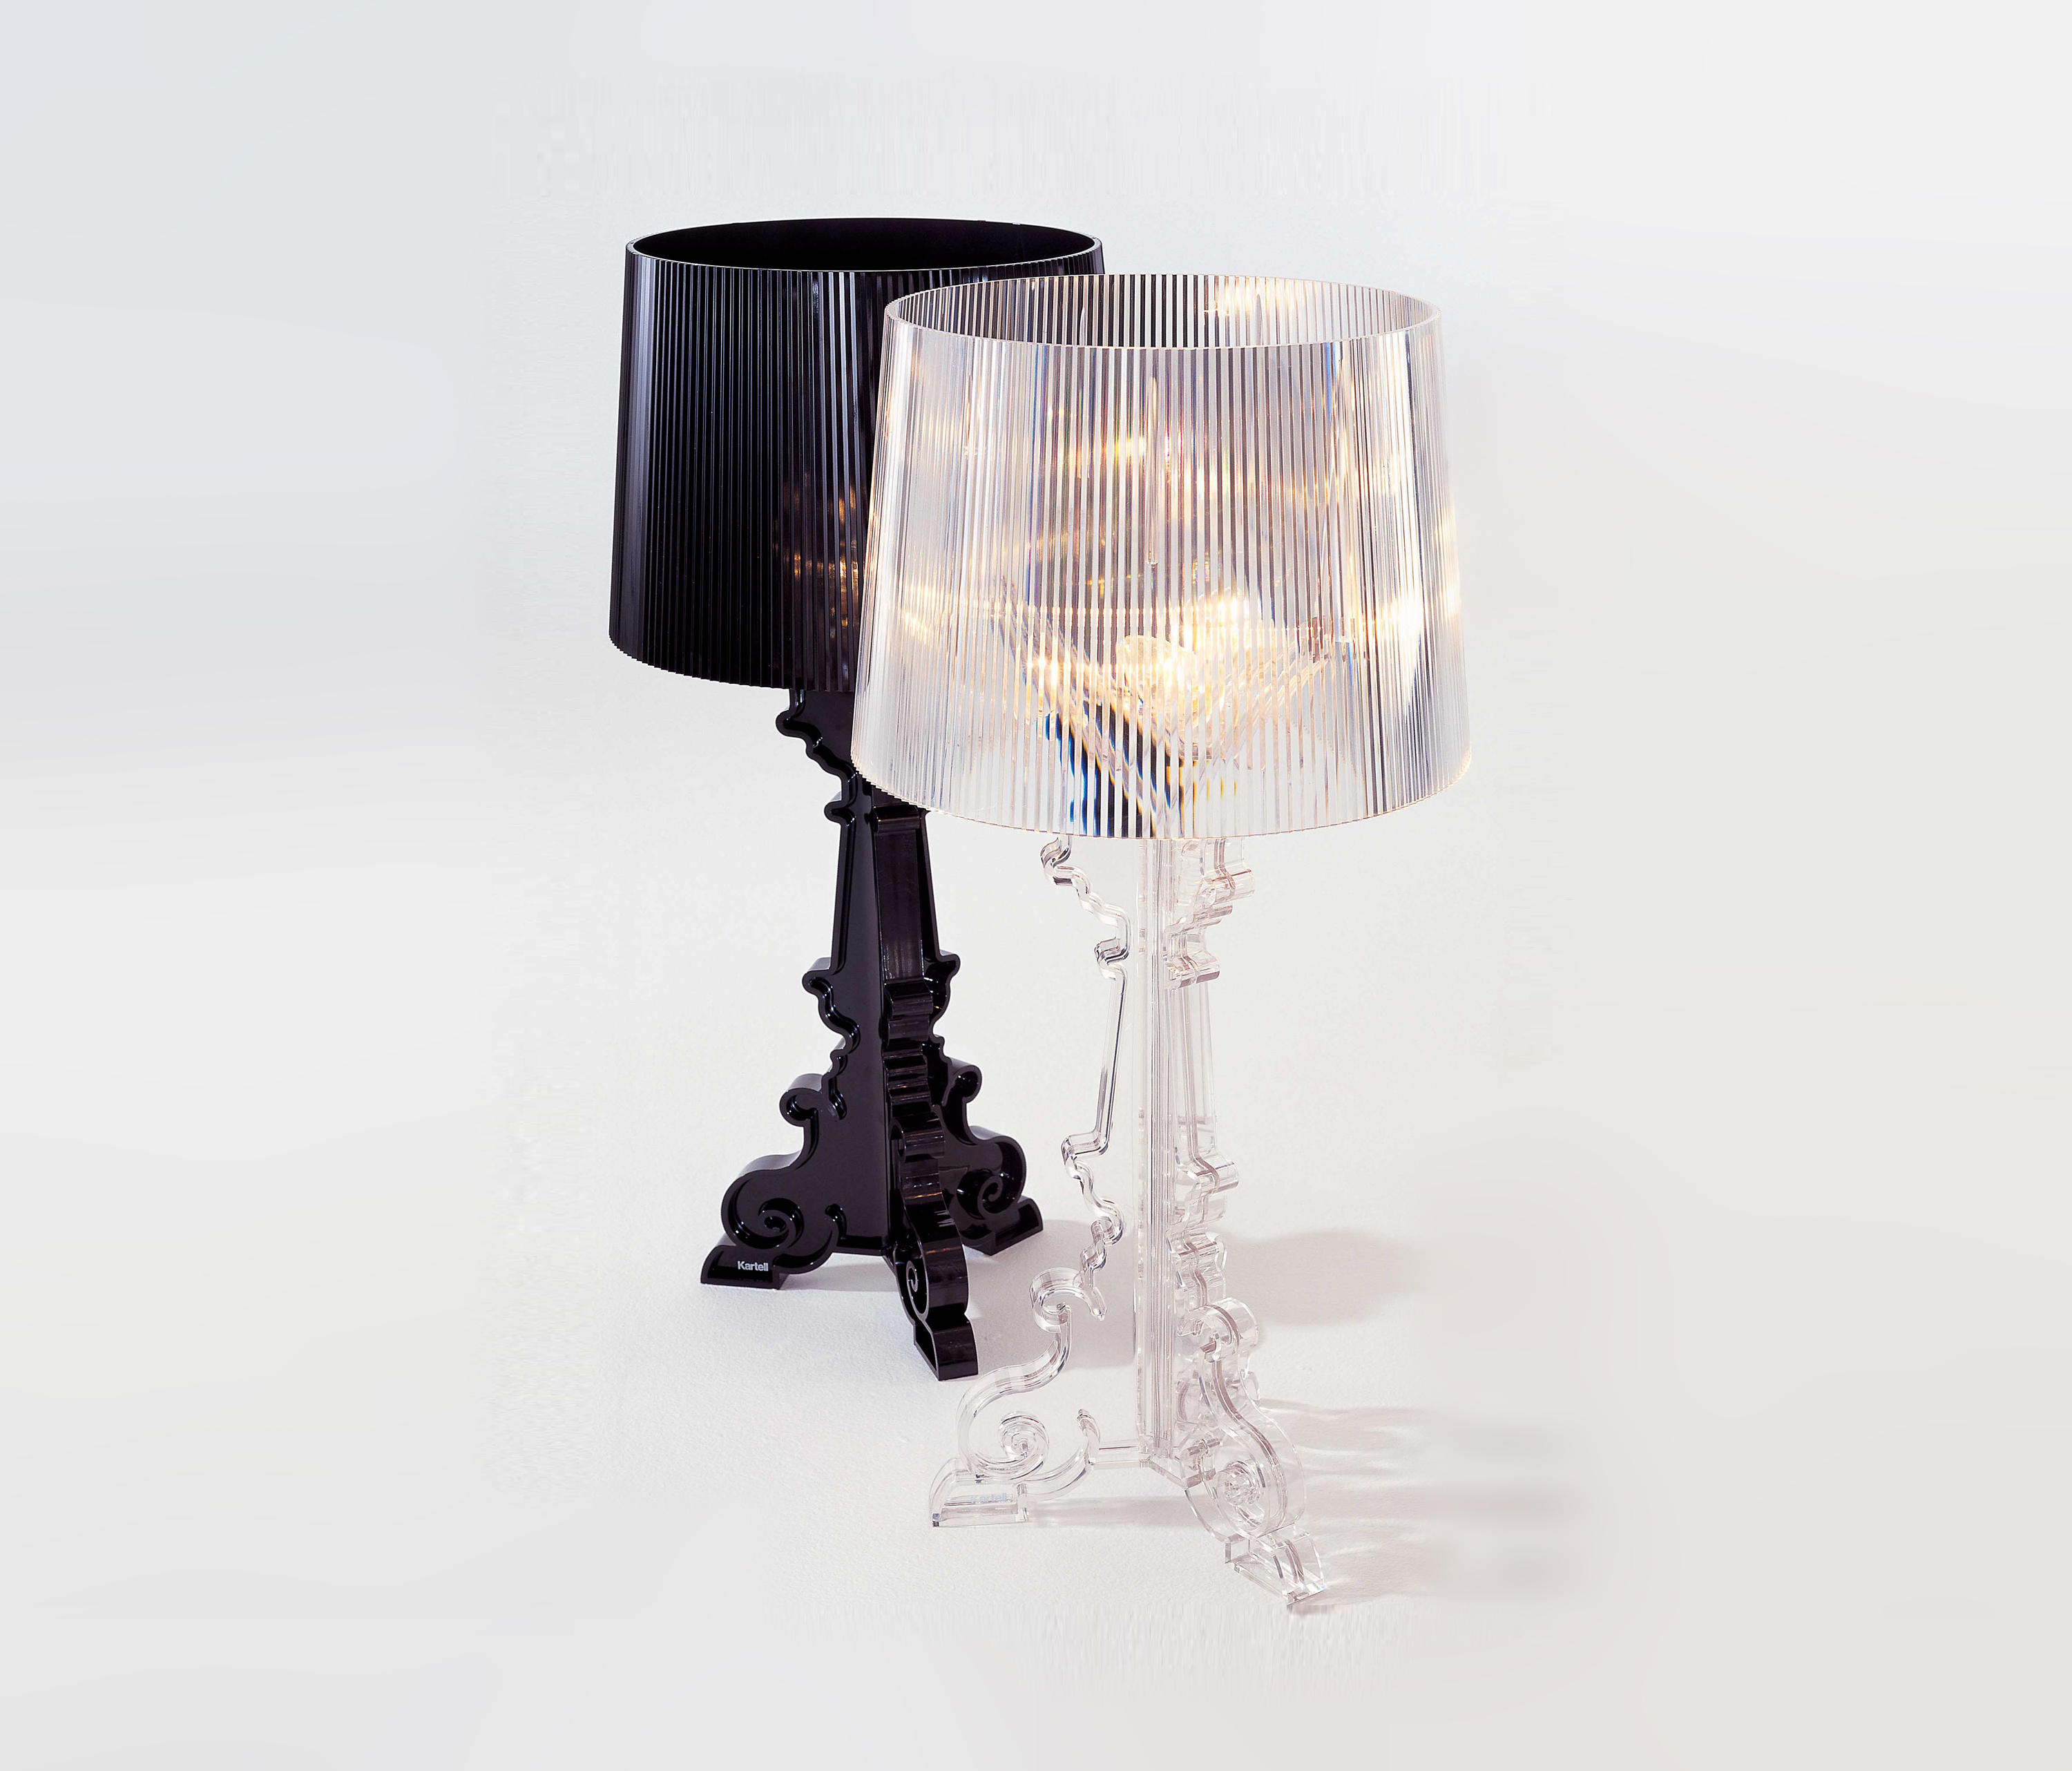 kartell lampen affordable wandleuchte light air led design kartell in mnchen with kartell. Black Bedroom Furniture Sets. Home Design Ideas